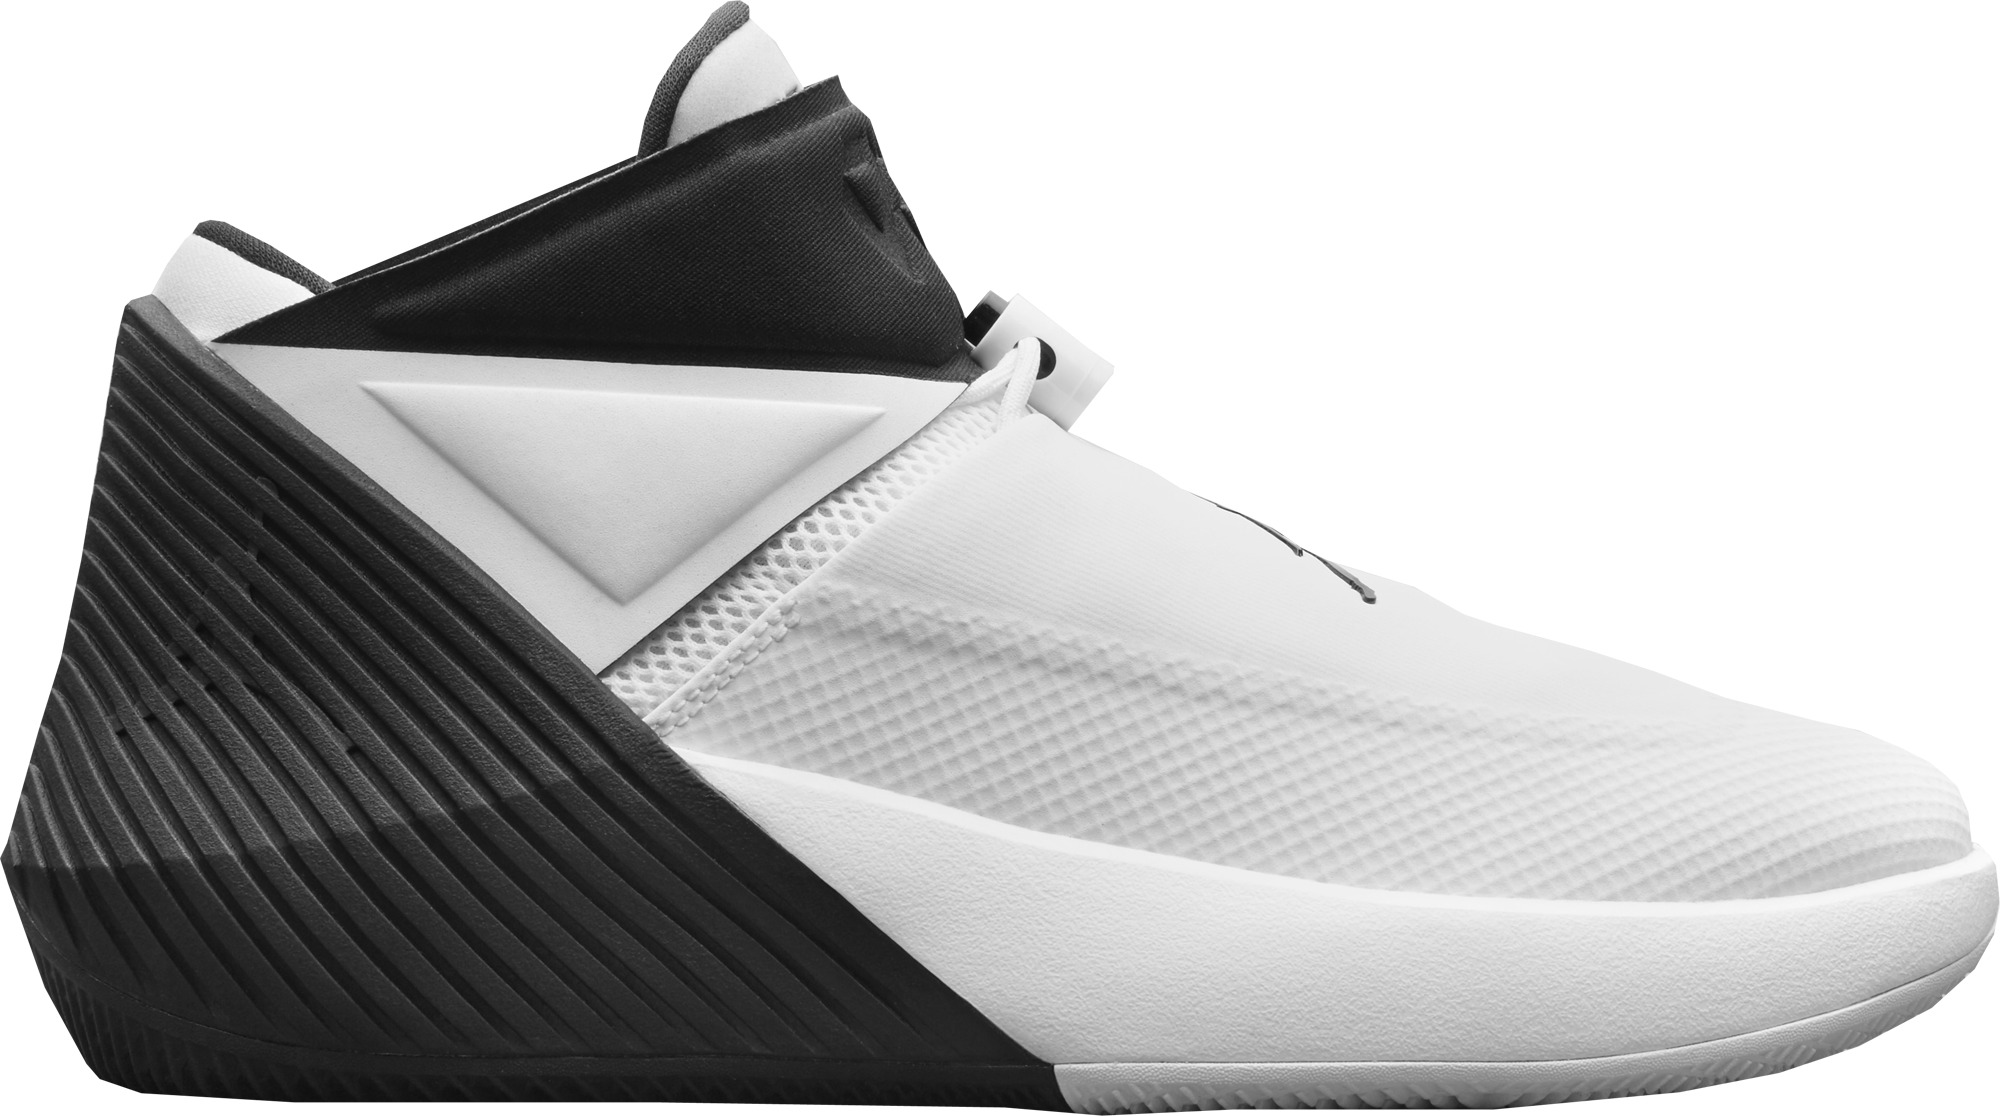 Jordan Why Not Zer0.1 White/Black